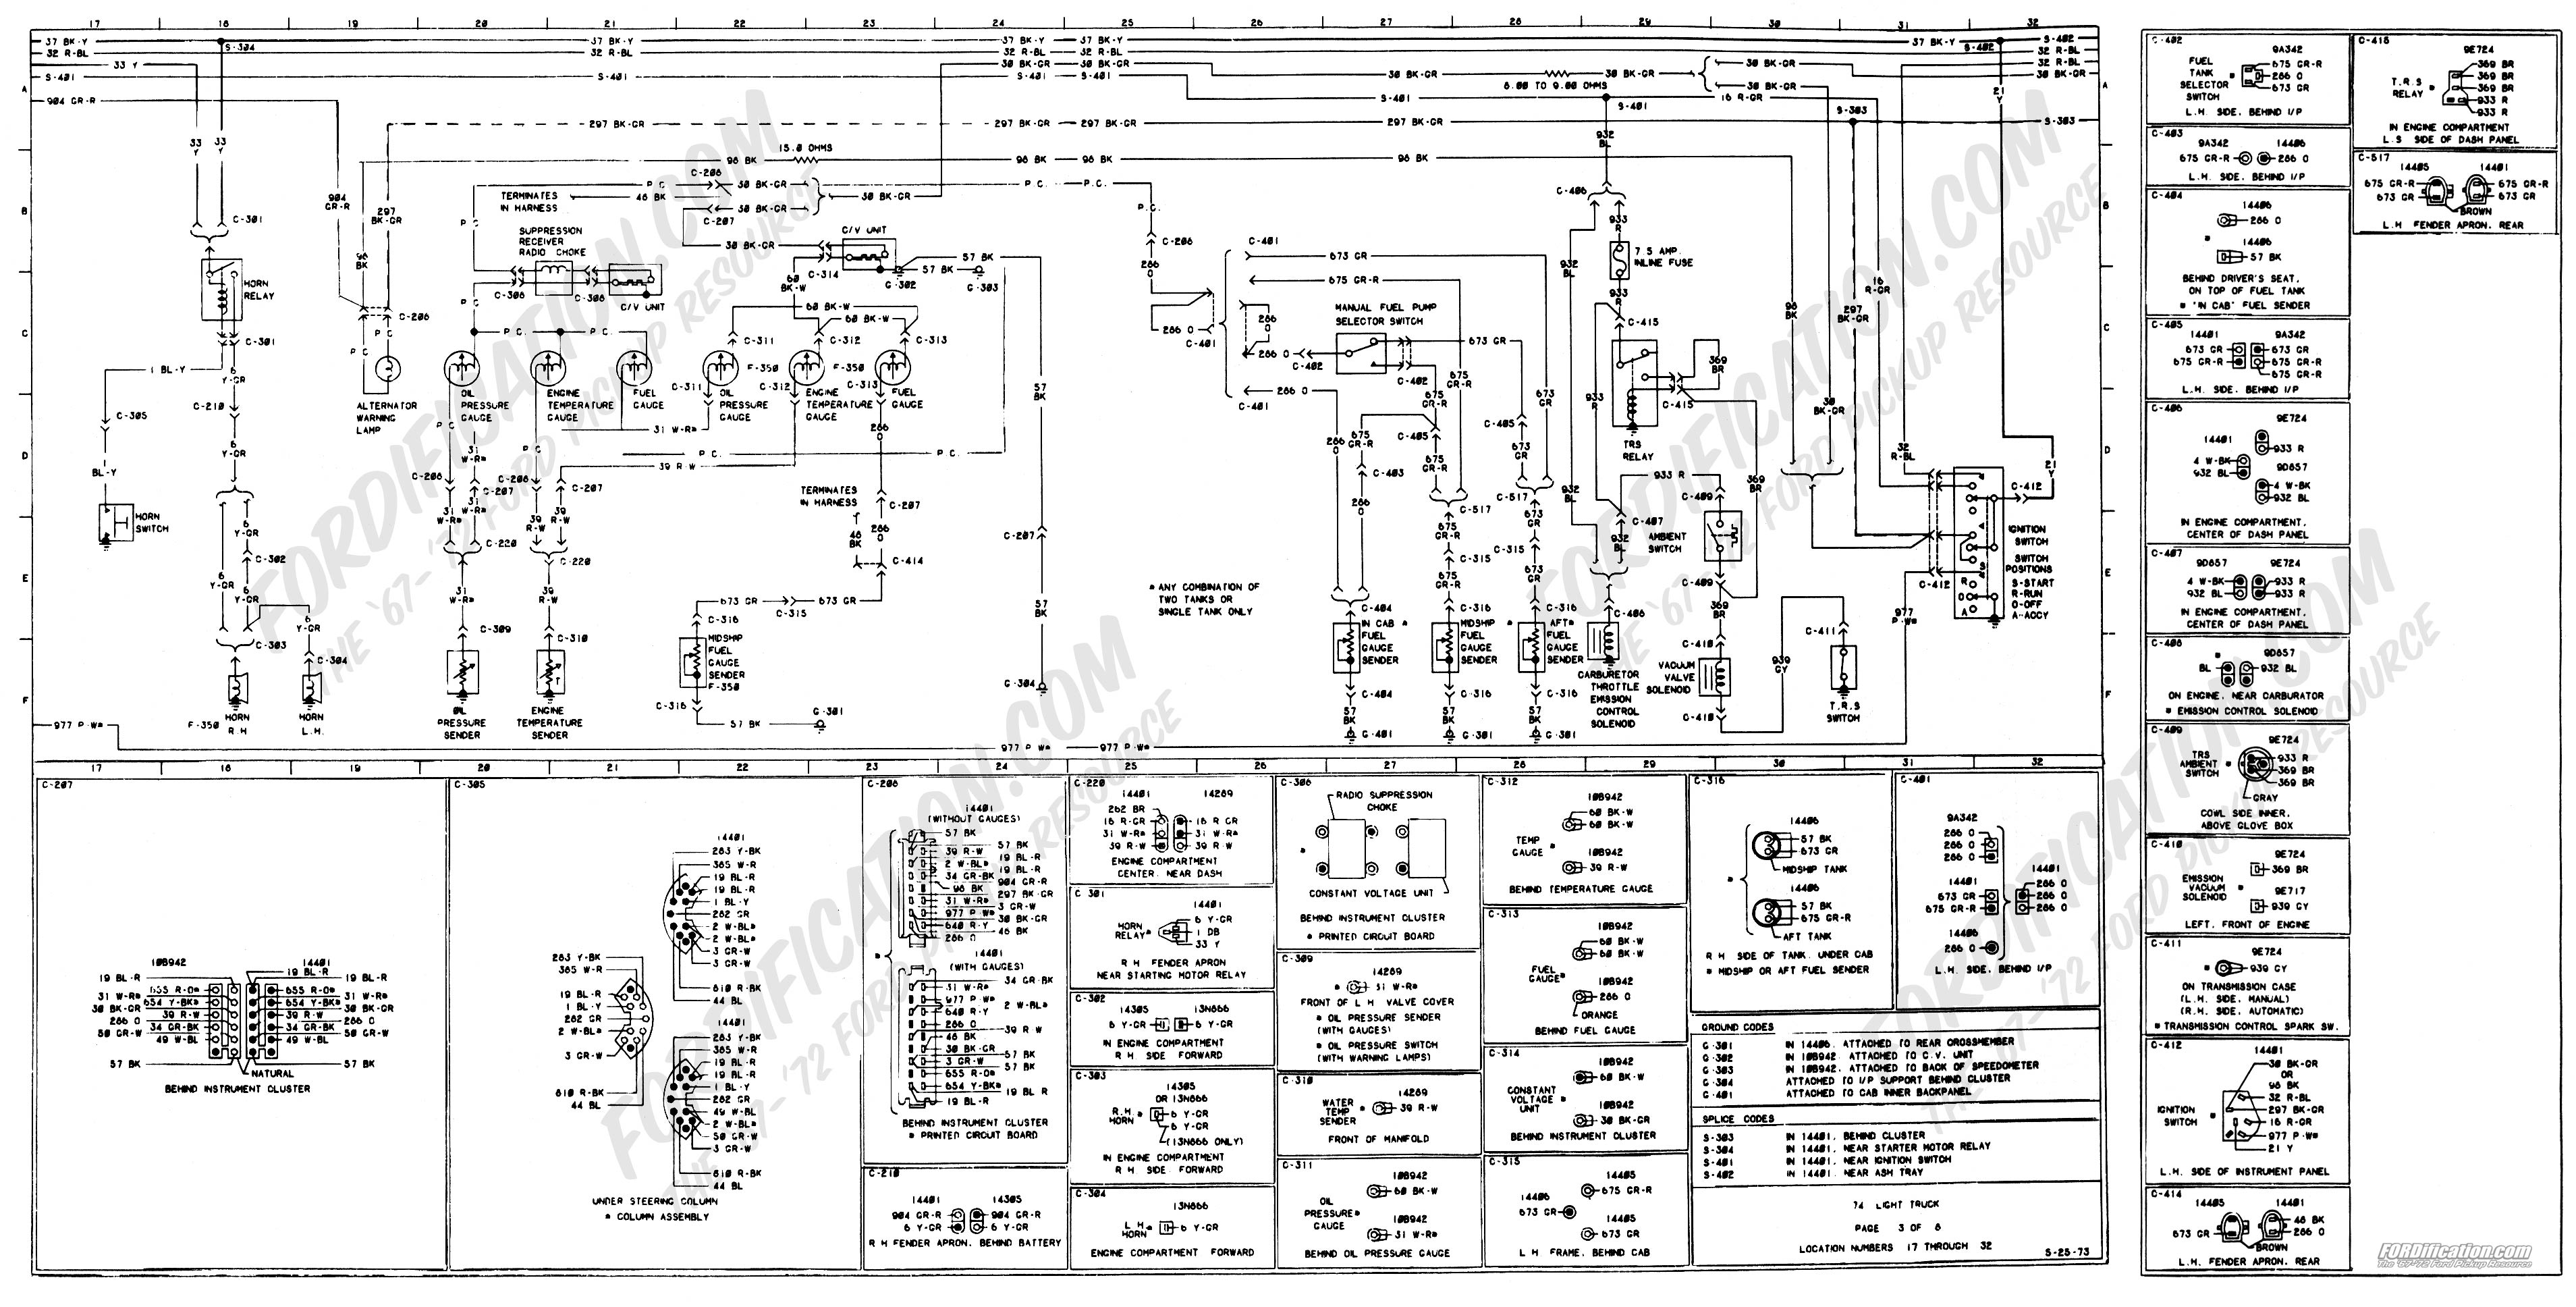 wiring_74master_3of8 1973 1979 ford truck wiring diagrams & schematics fordification net 1979 ford bronco fuse box diagram at arjmand.co